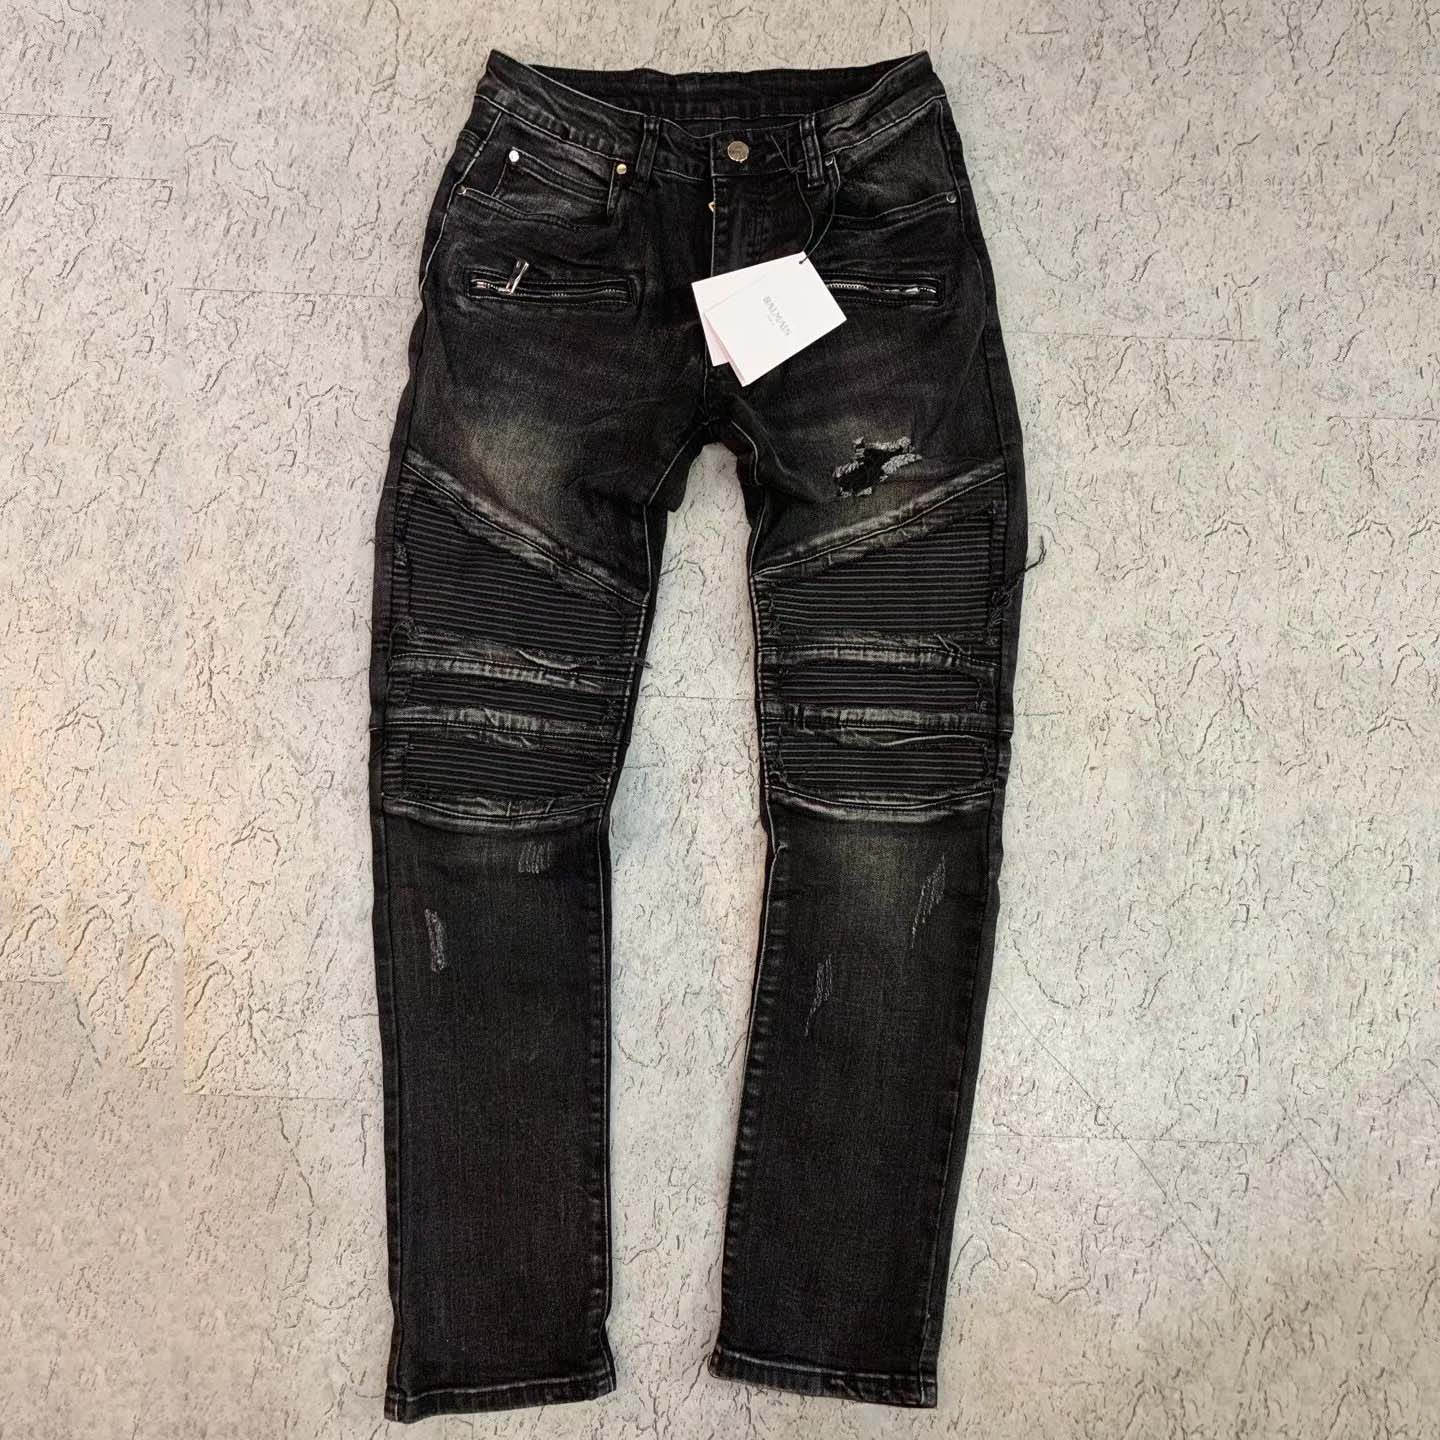 Black Art Patch Jeans  - FashionBeast